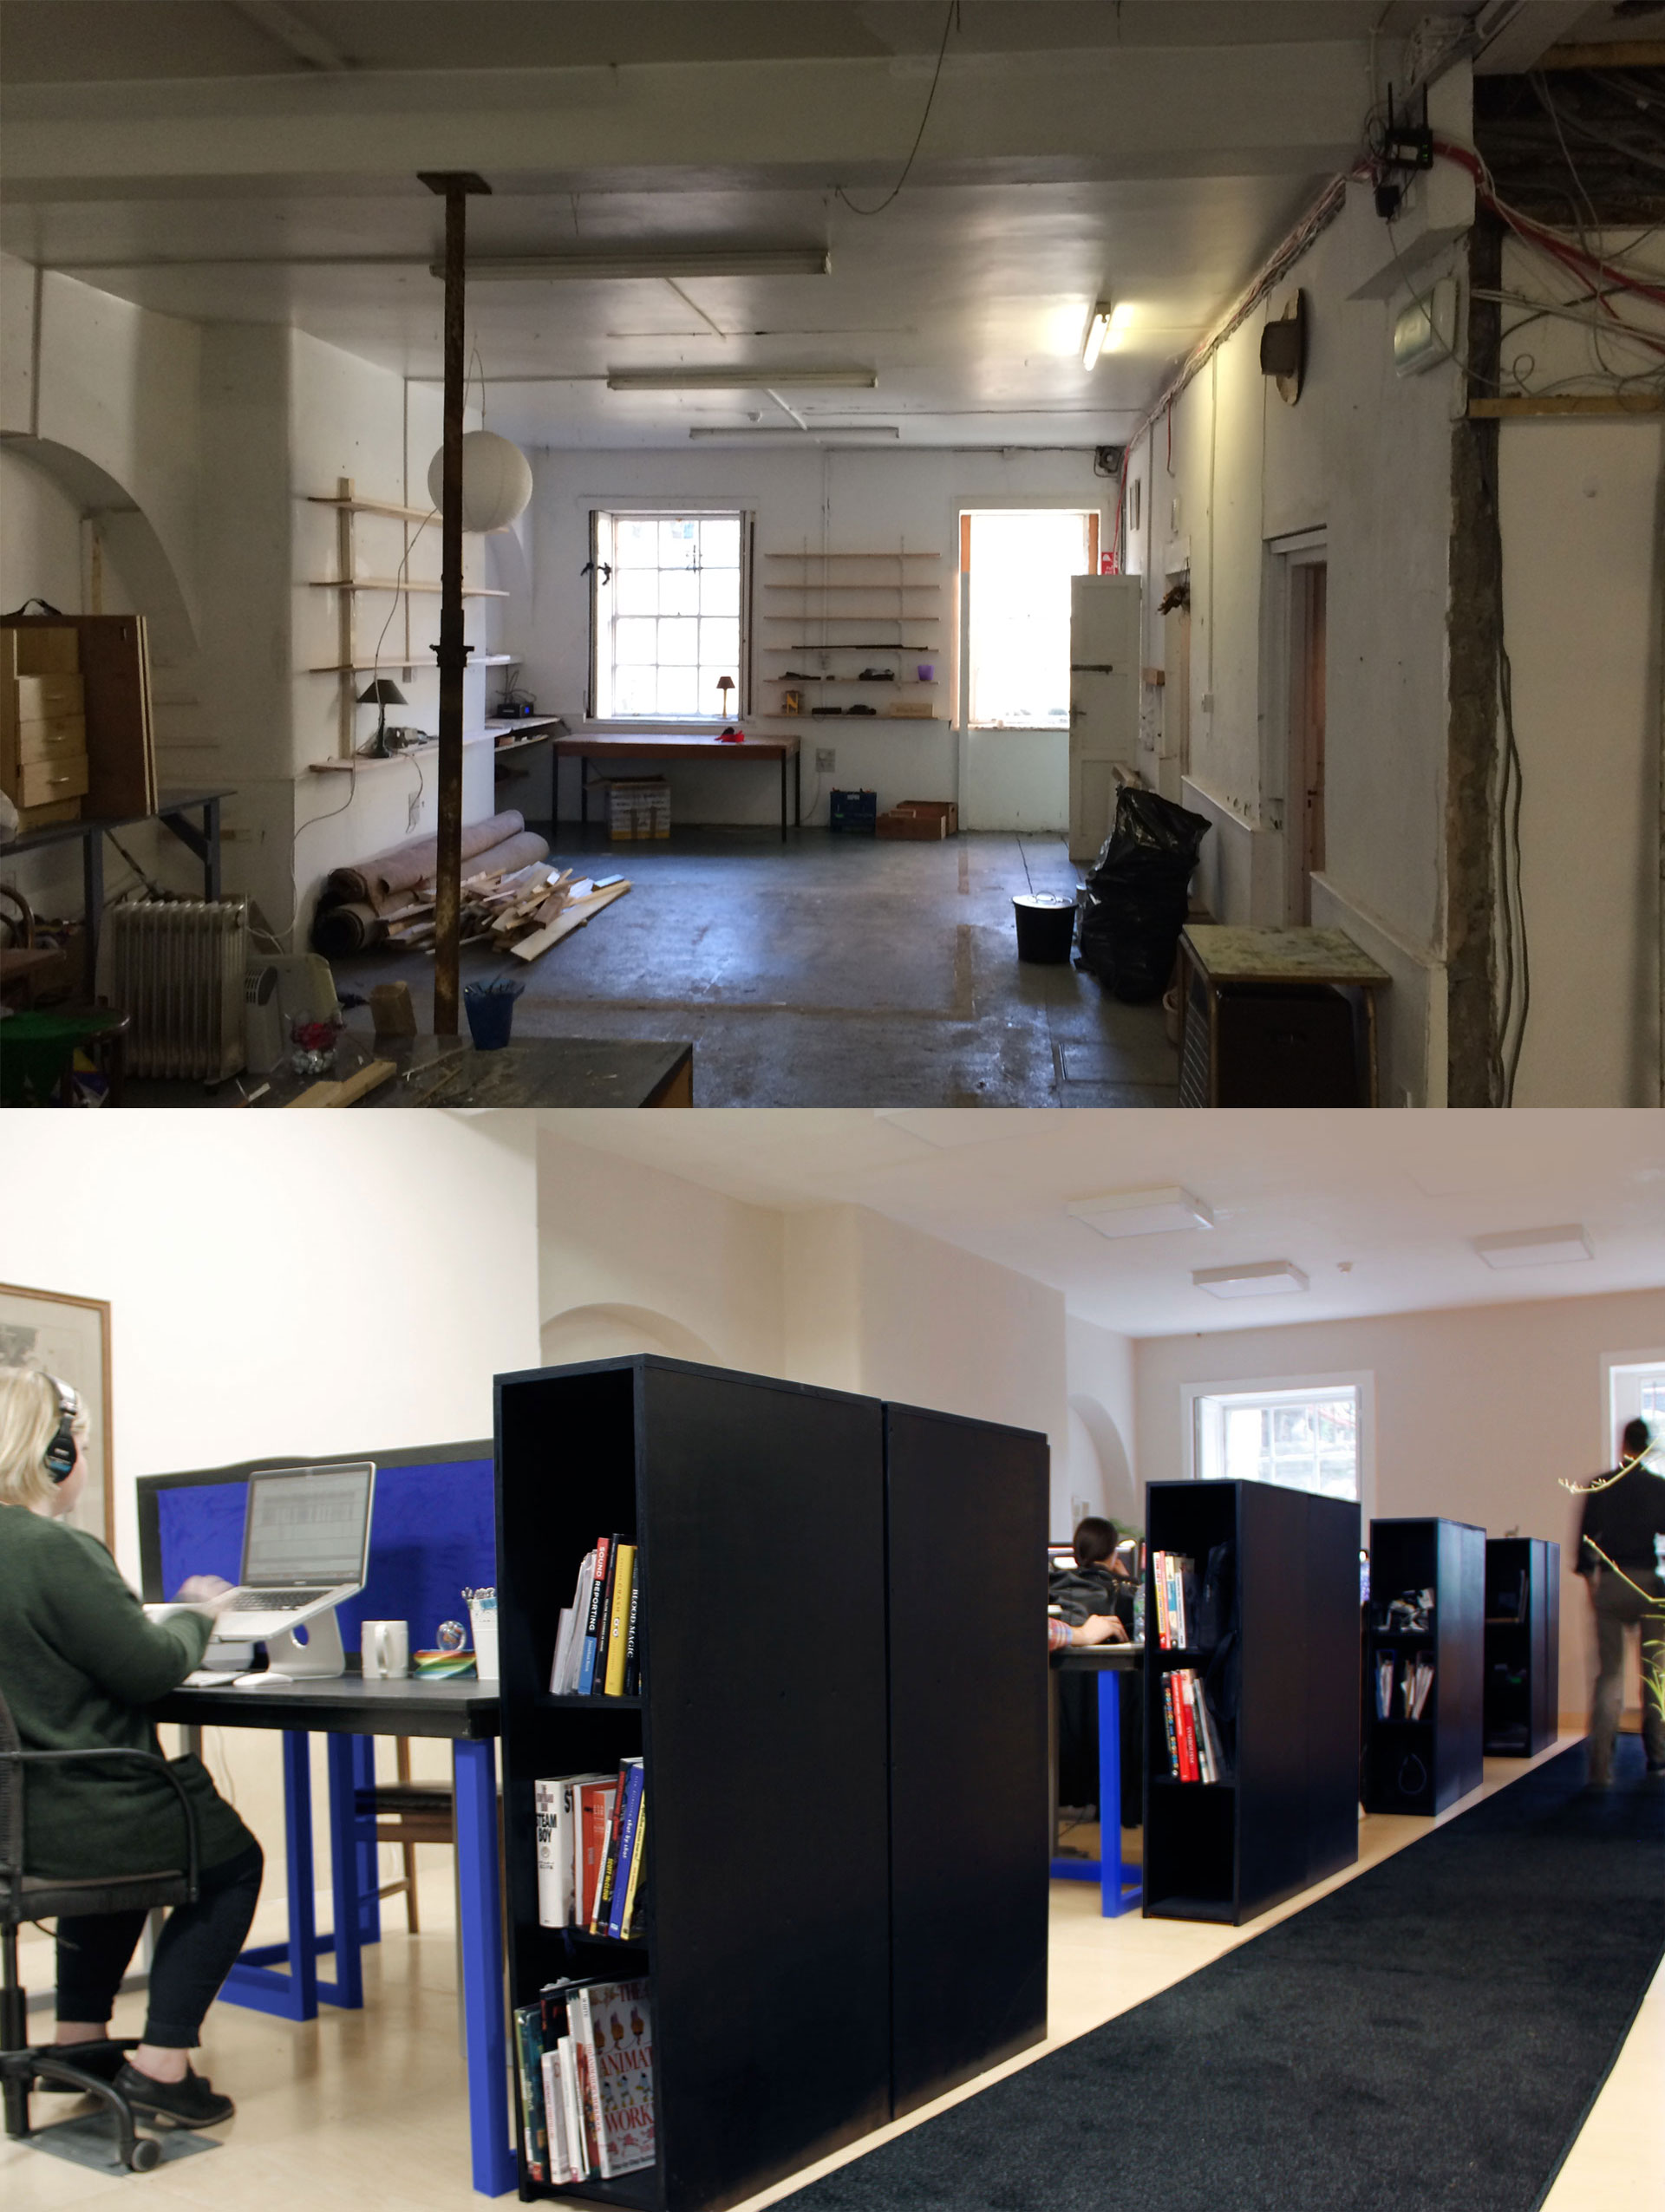 From Studio 9 Artbase to Number 9 – Coworking